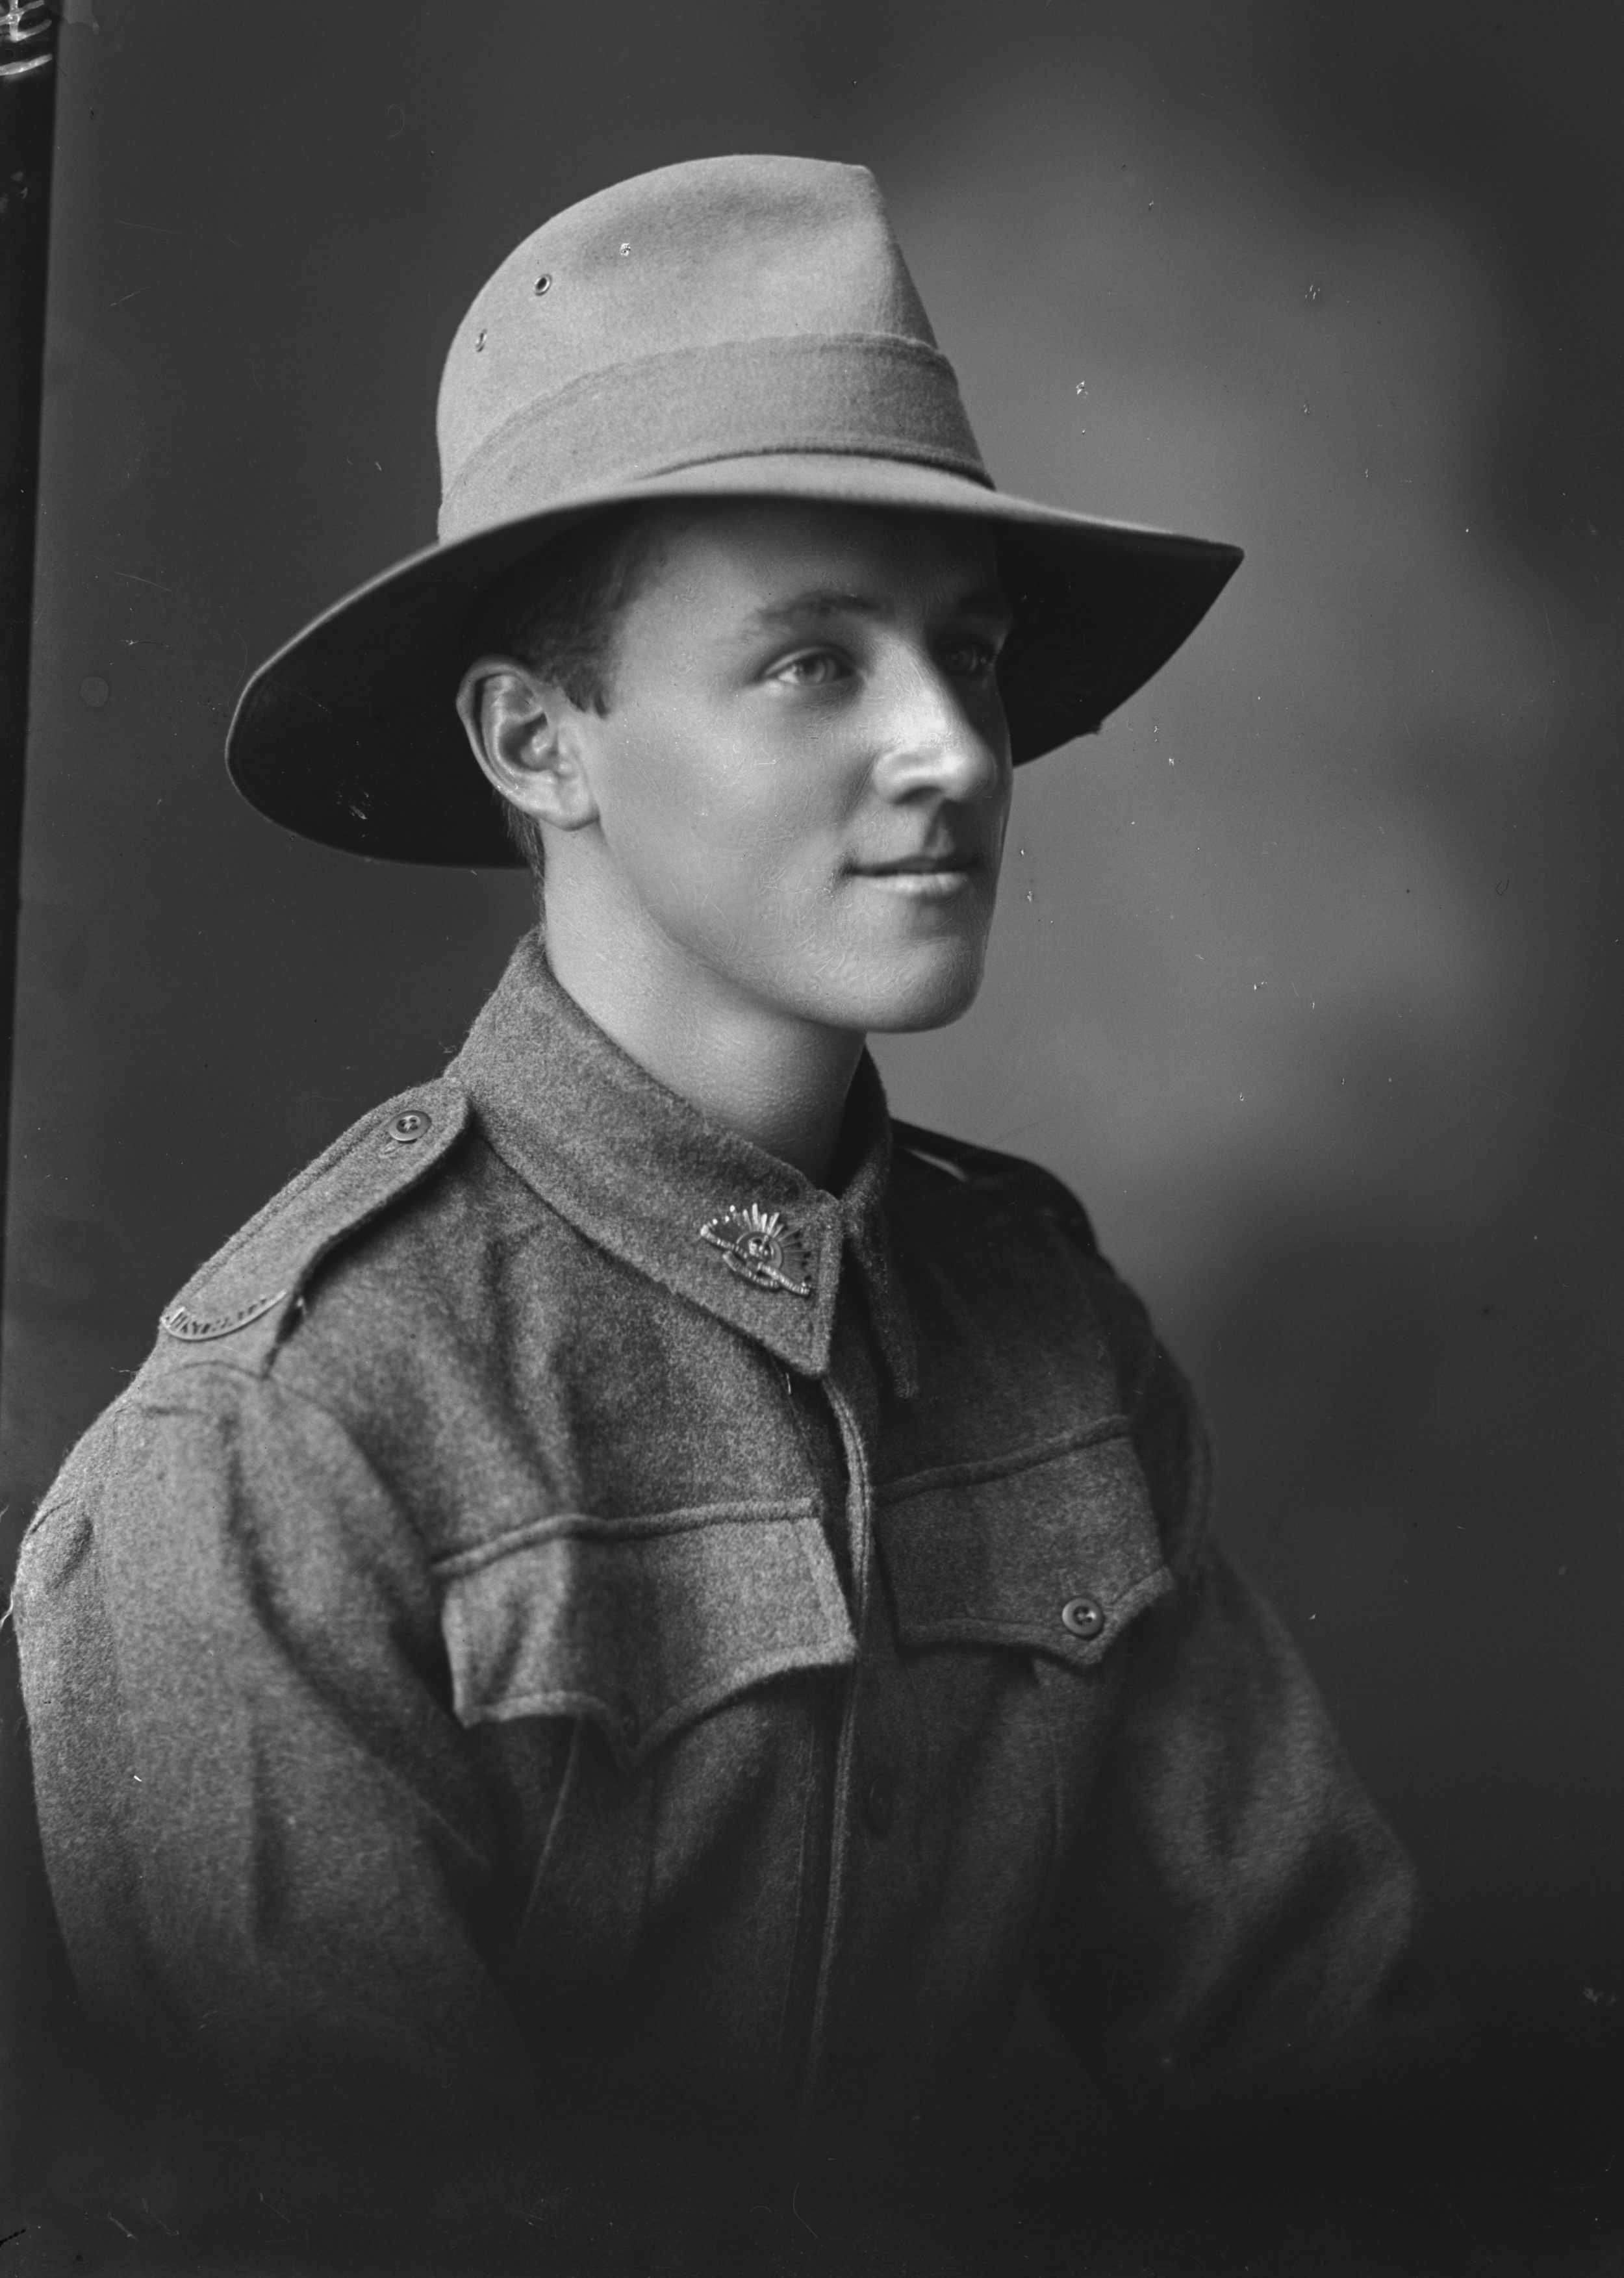 Photographed at the Dease Studio, 117 Barrack Street Perth WA Image courtesy of the State Library of Western Australia: 108376PD